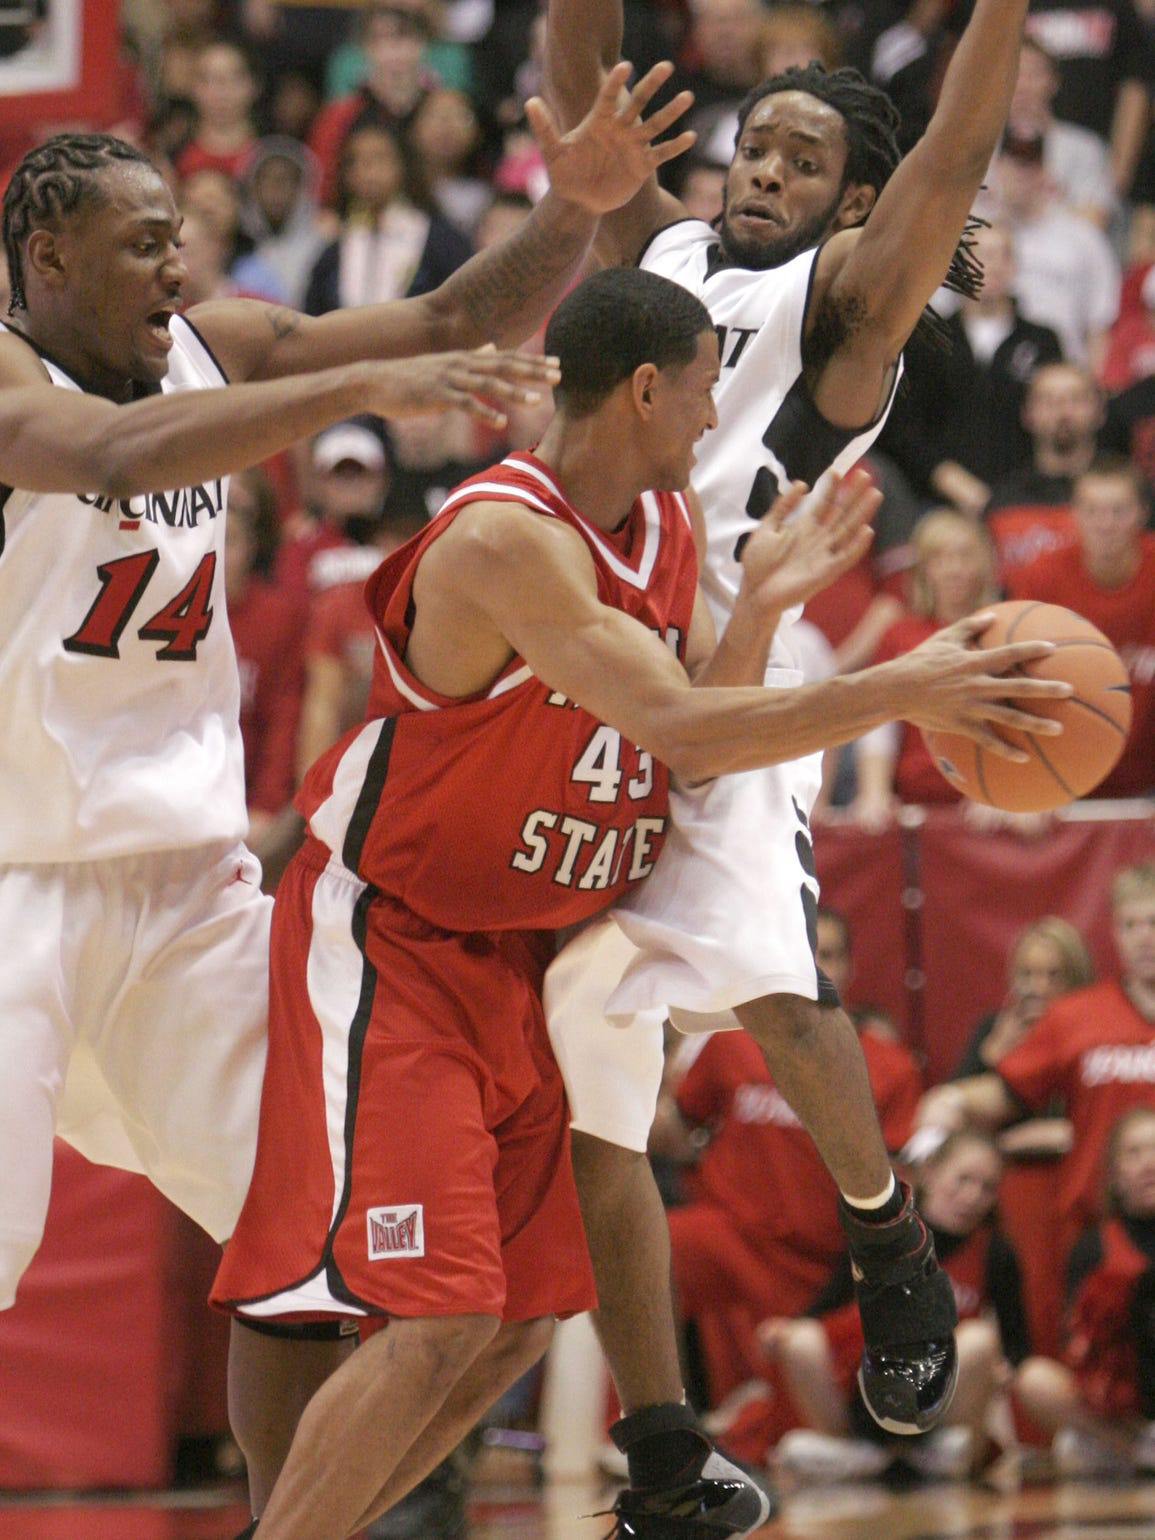 Illinois State guard Dana Ford, middle, is pressured during the second half, Tuesday, Nov. 22, 2005, in Cincinnati.